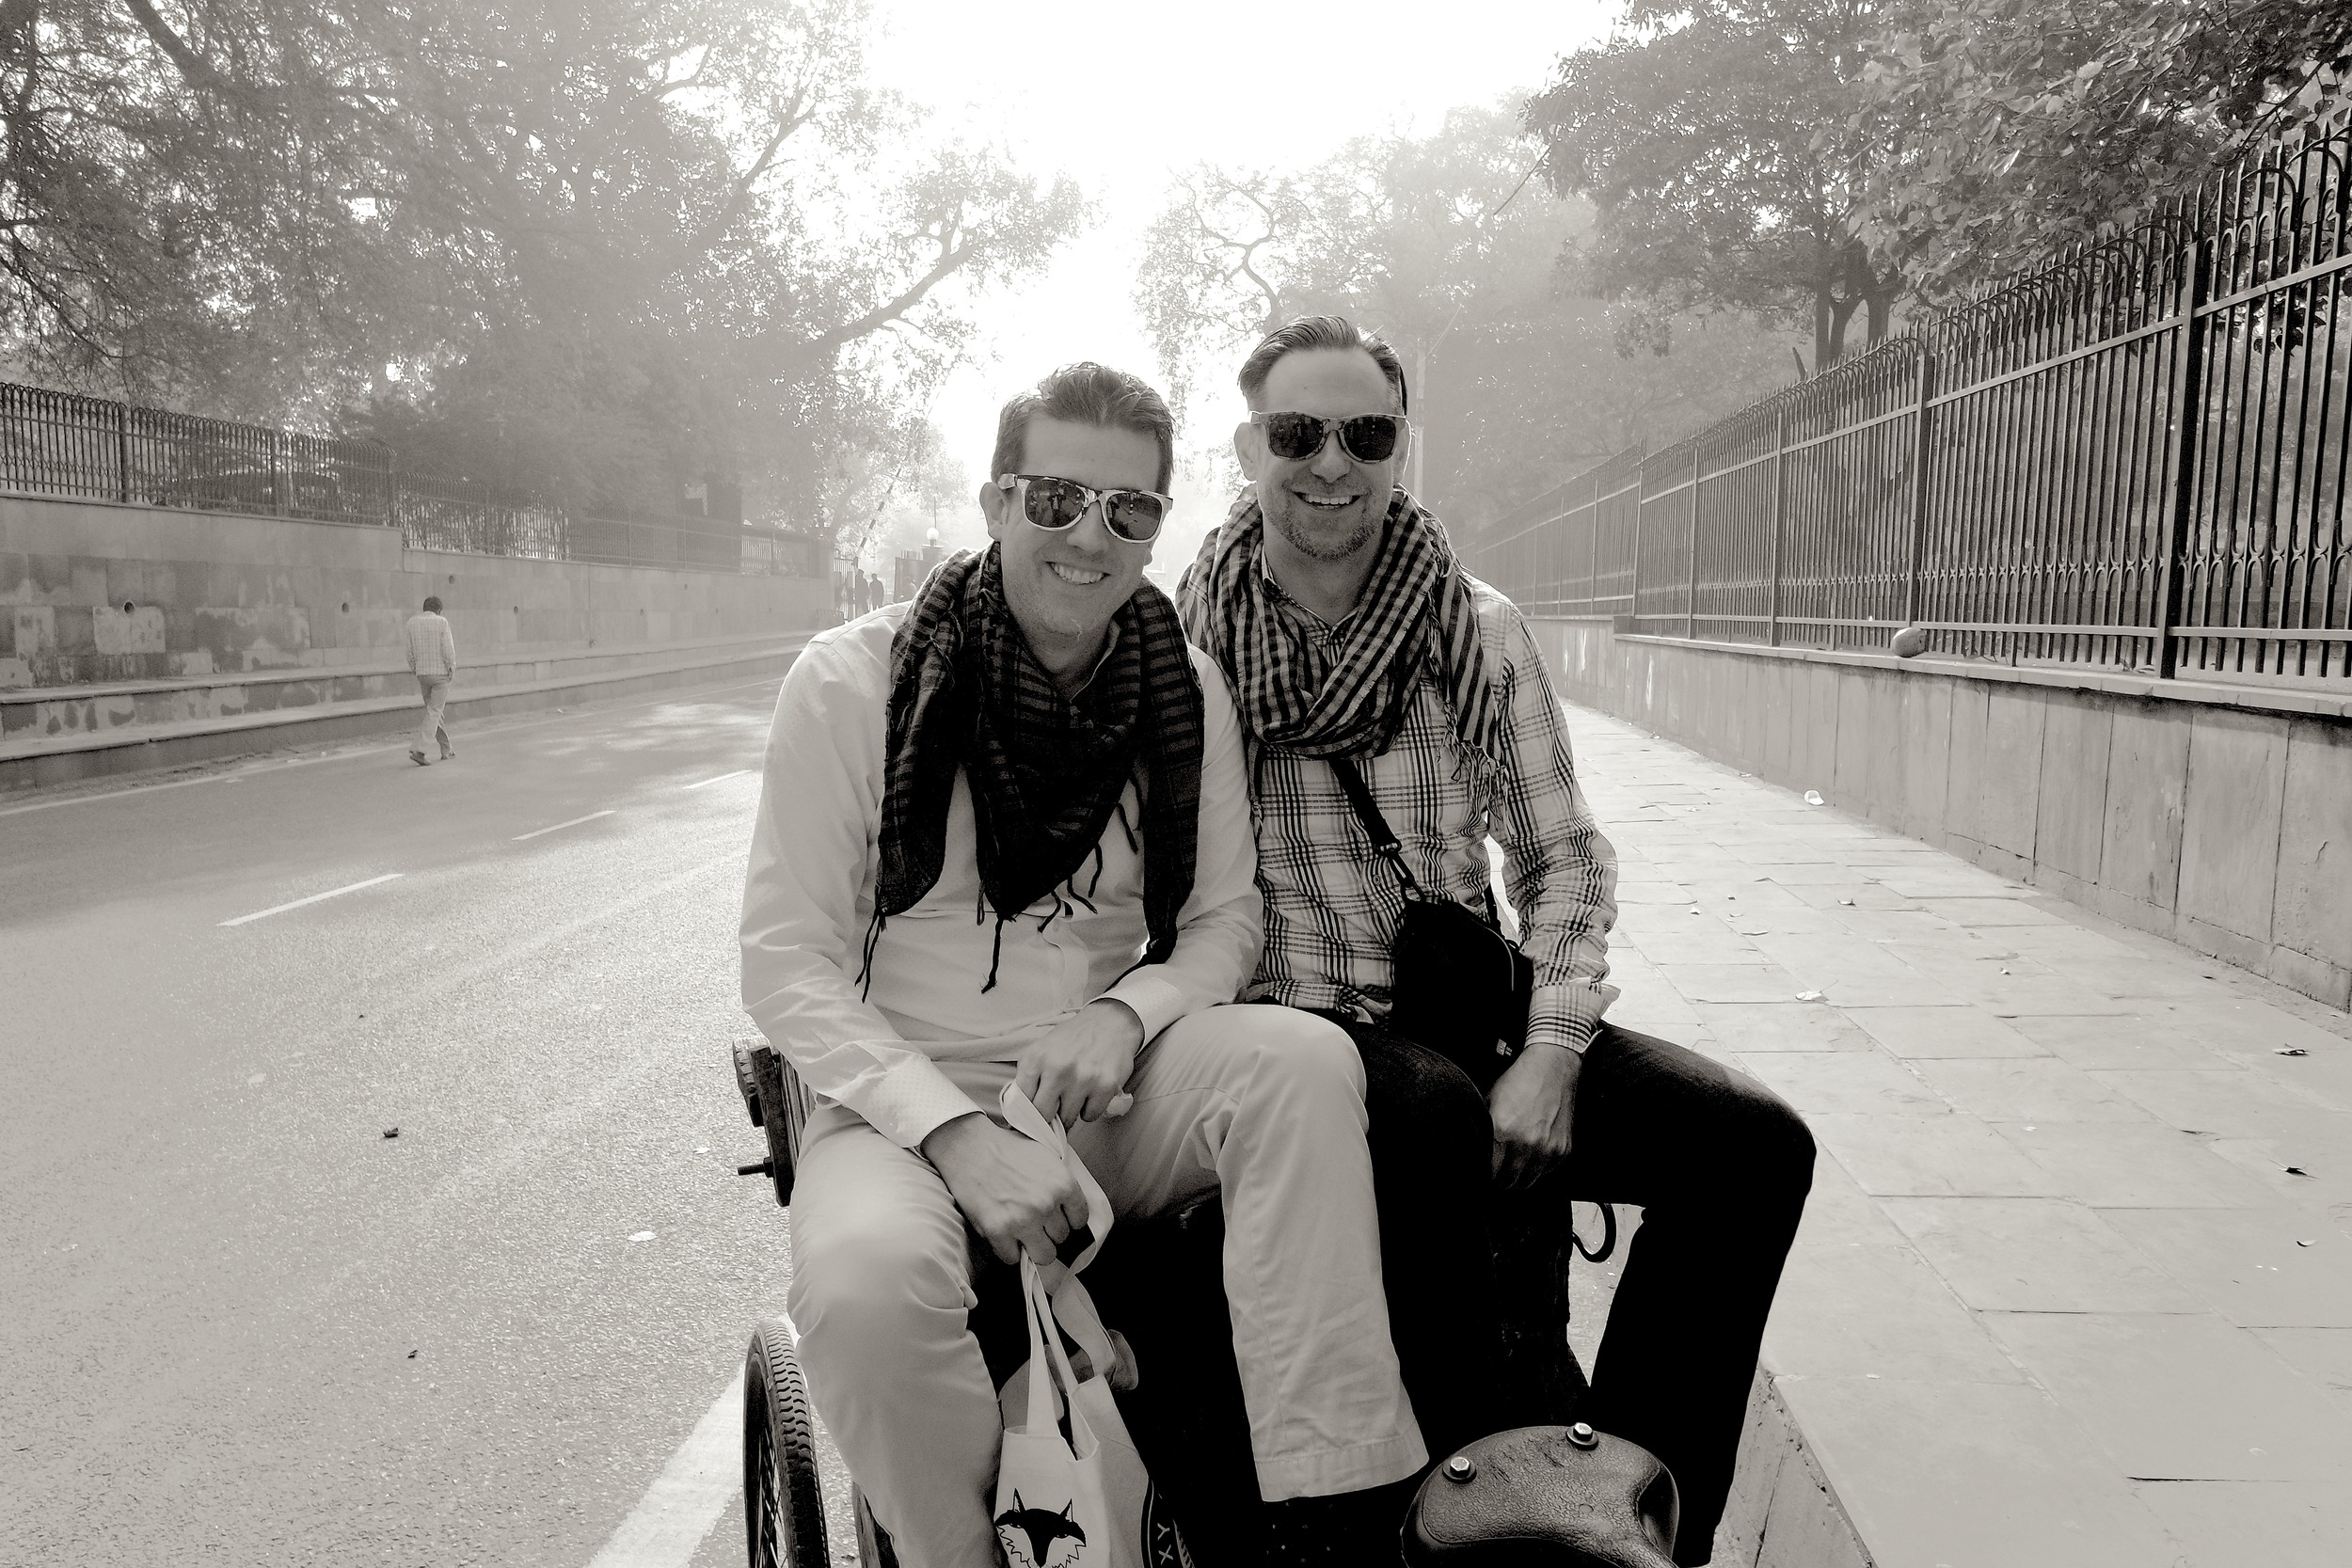 Wally and Duke precariously perched on the back of Mohammed's bicycle rickshaw, ready to explore Old Delhi